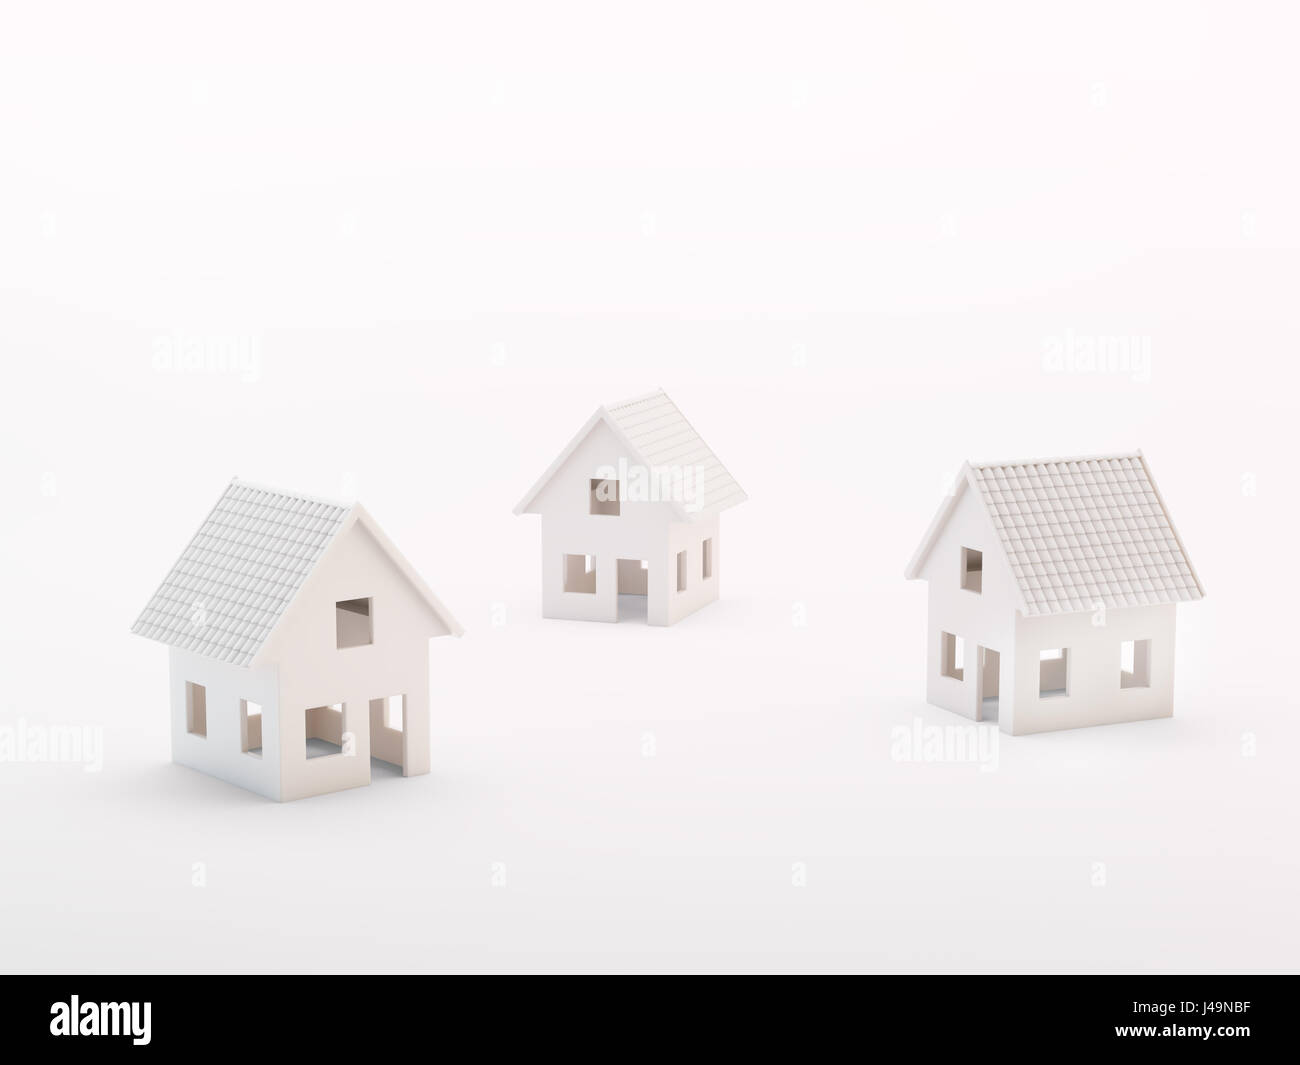 Three small model houses - real estate concept 3d illustration - Stock Image